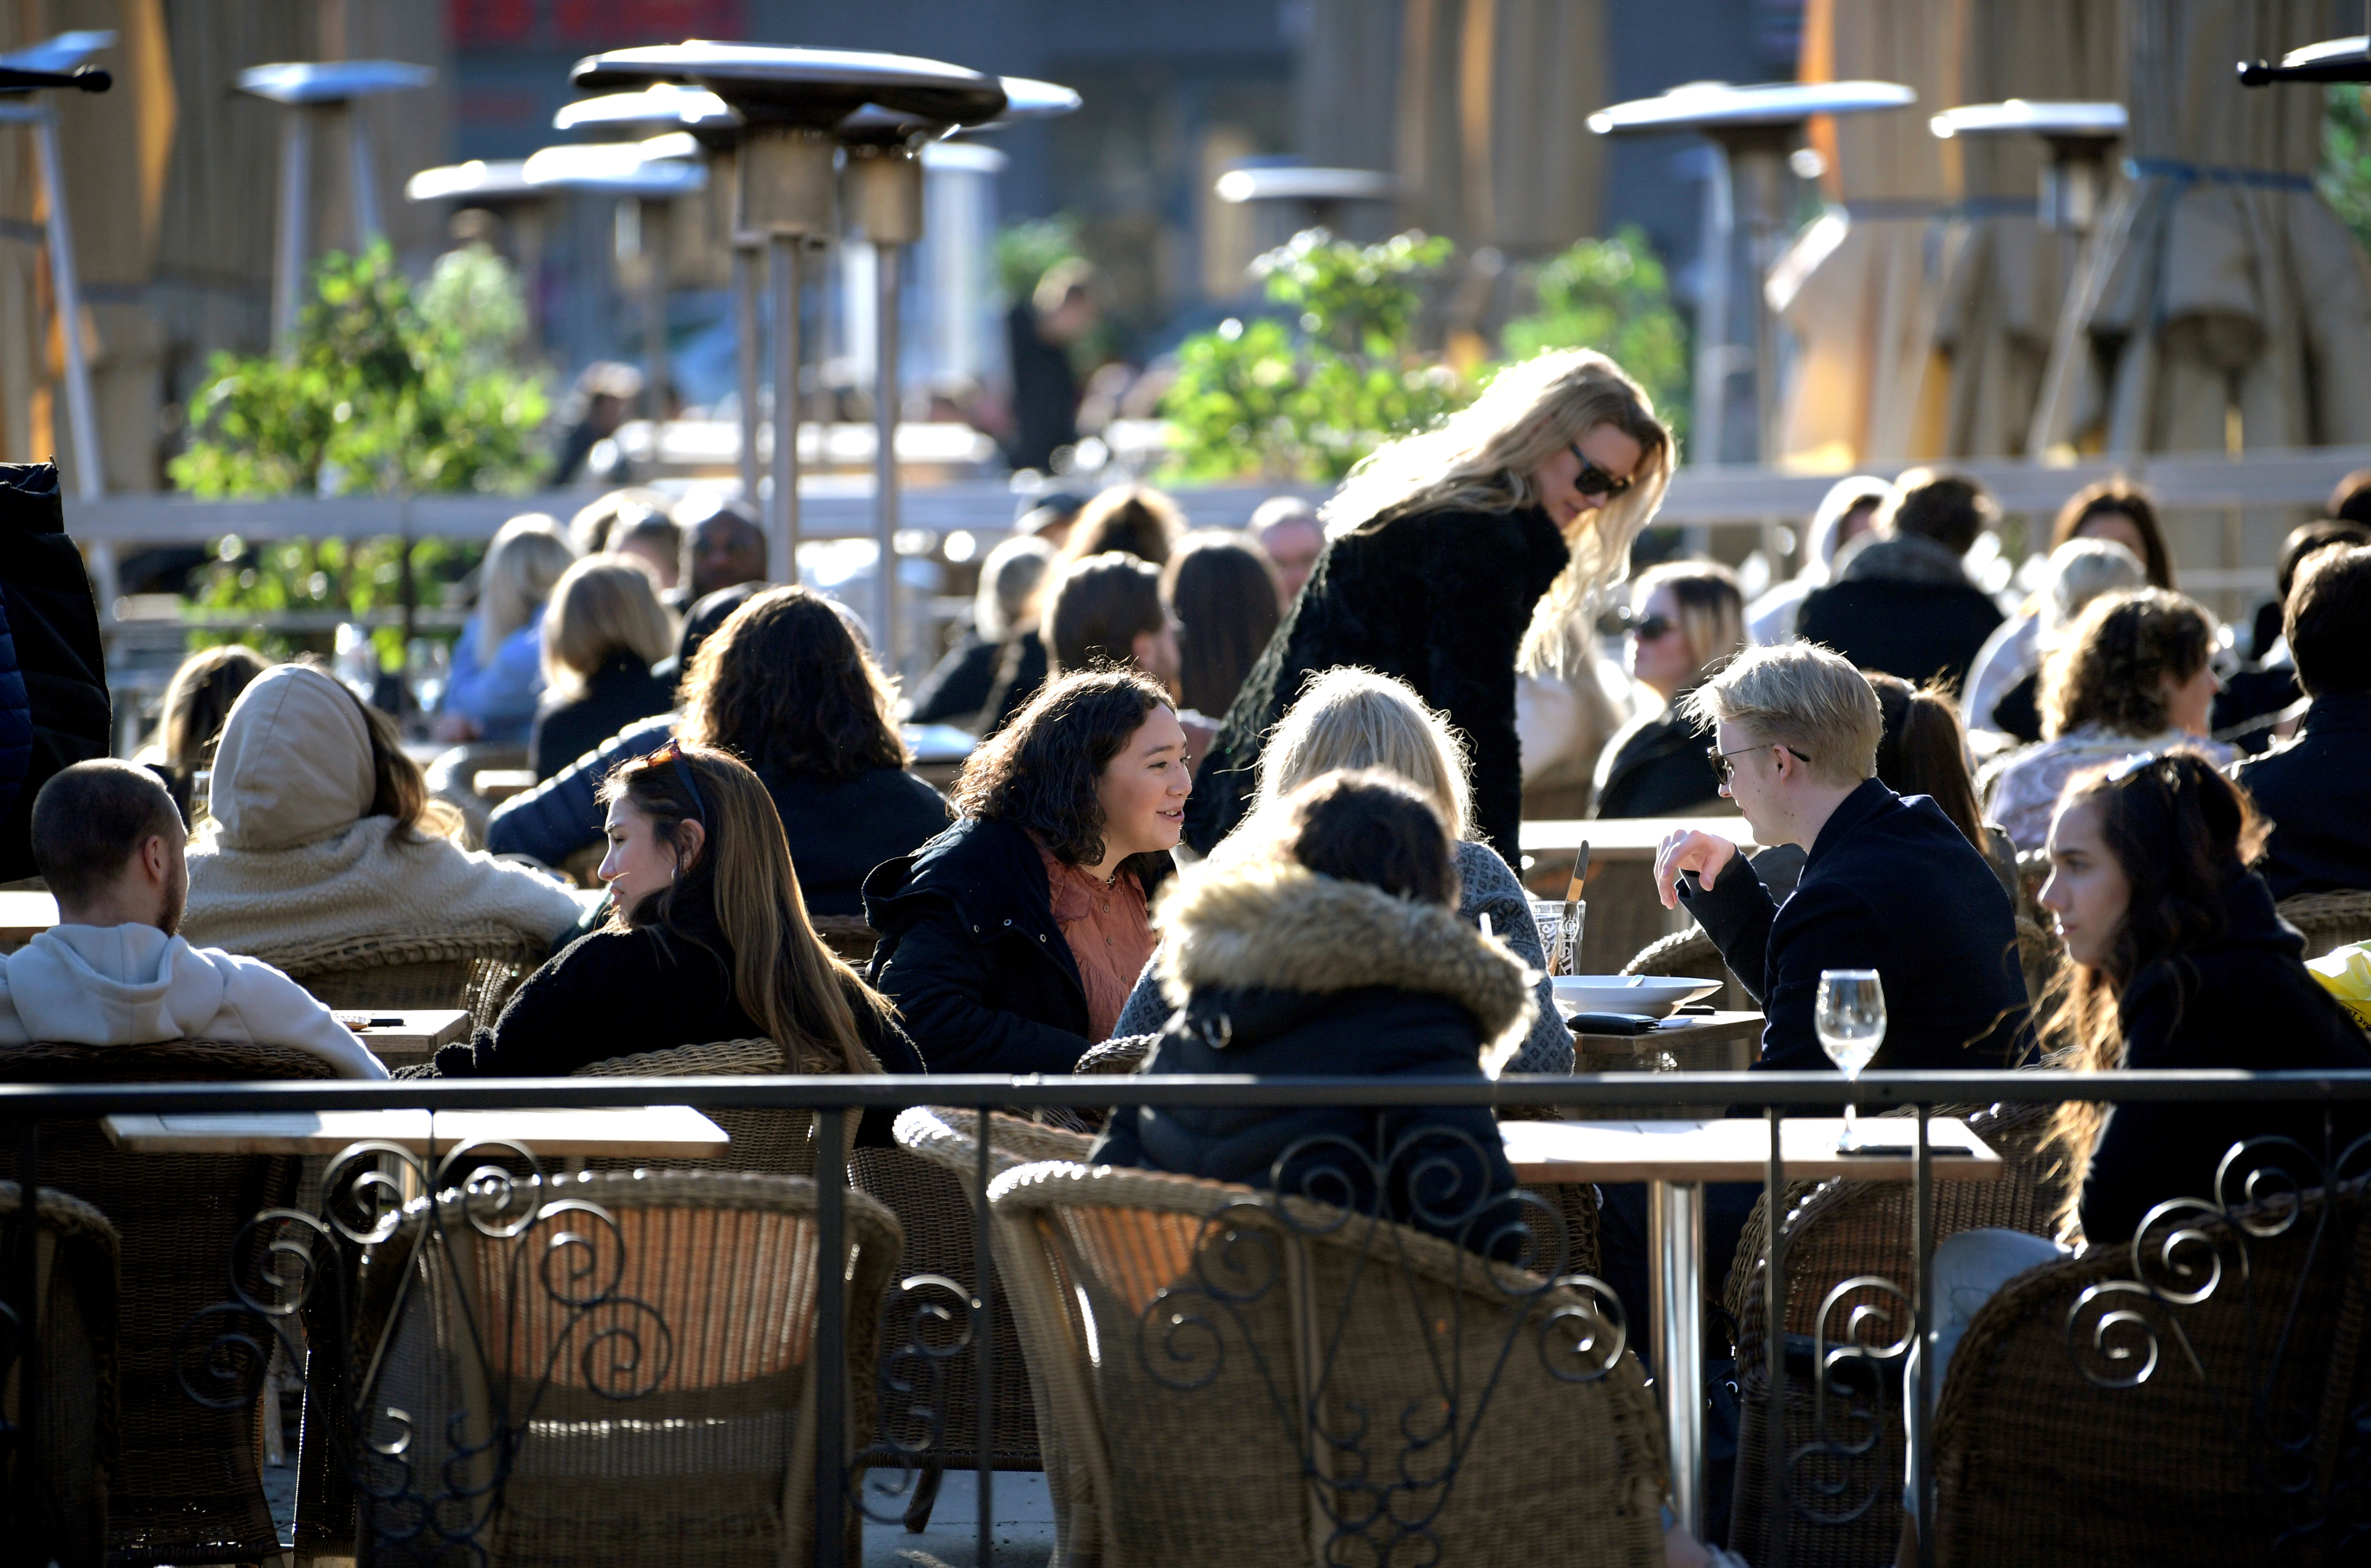 People enjoy the sun at an outdoor restaurant, despite the continuing spread of coronavirus disease (COVID-19), in Stockholm, Sweden March 26, 2020. TT News Agency/Janerik Henriksson via REUTERS /File Photo